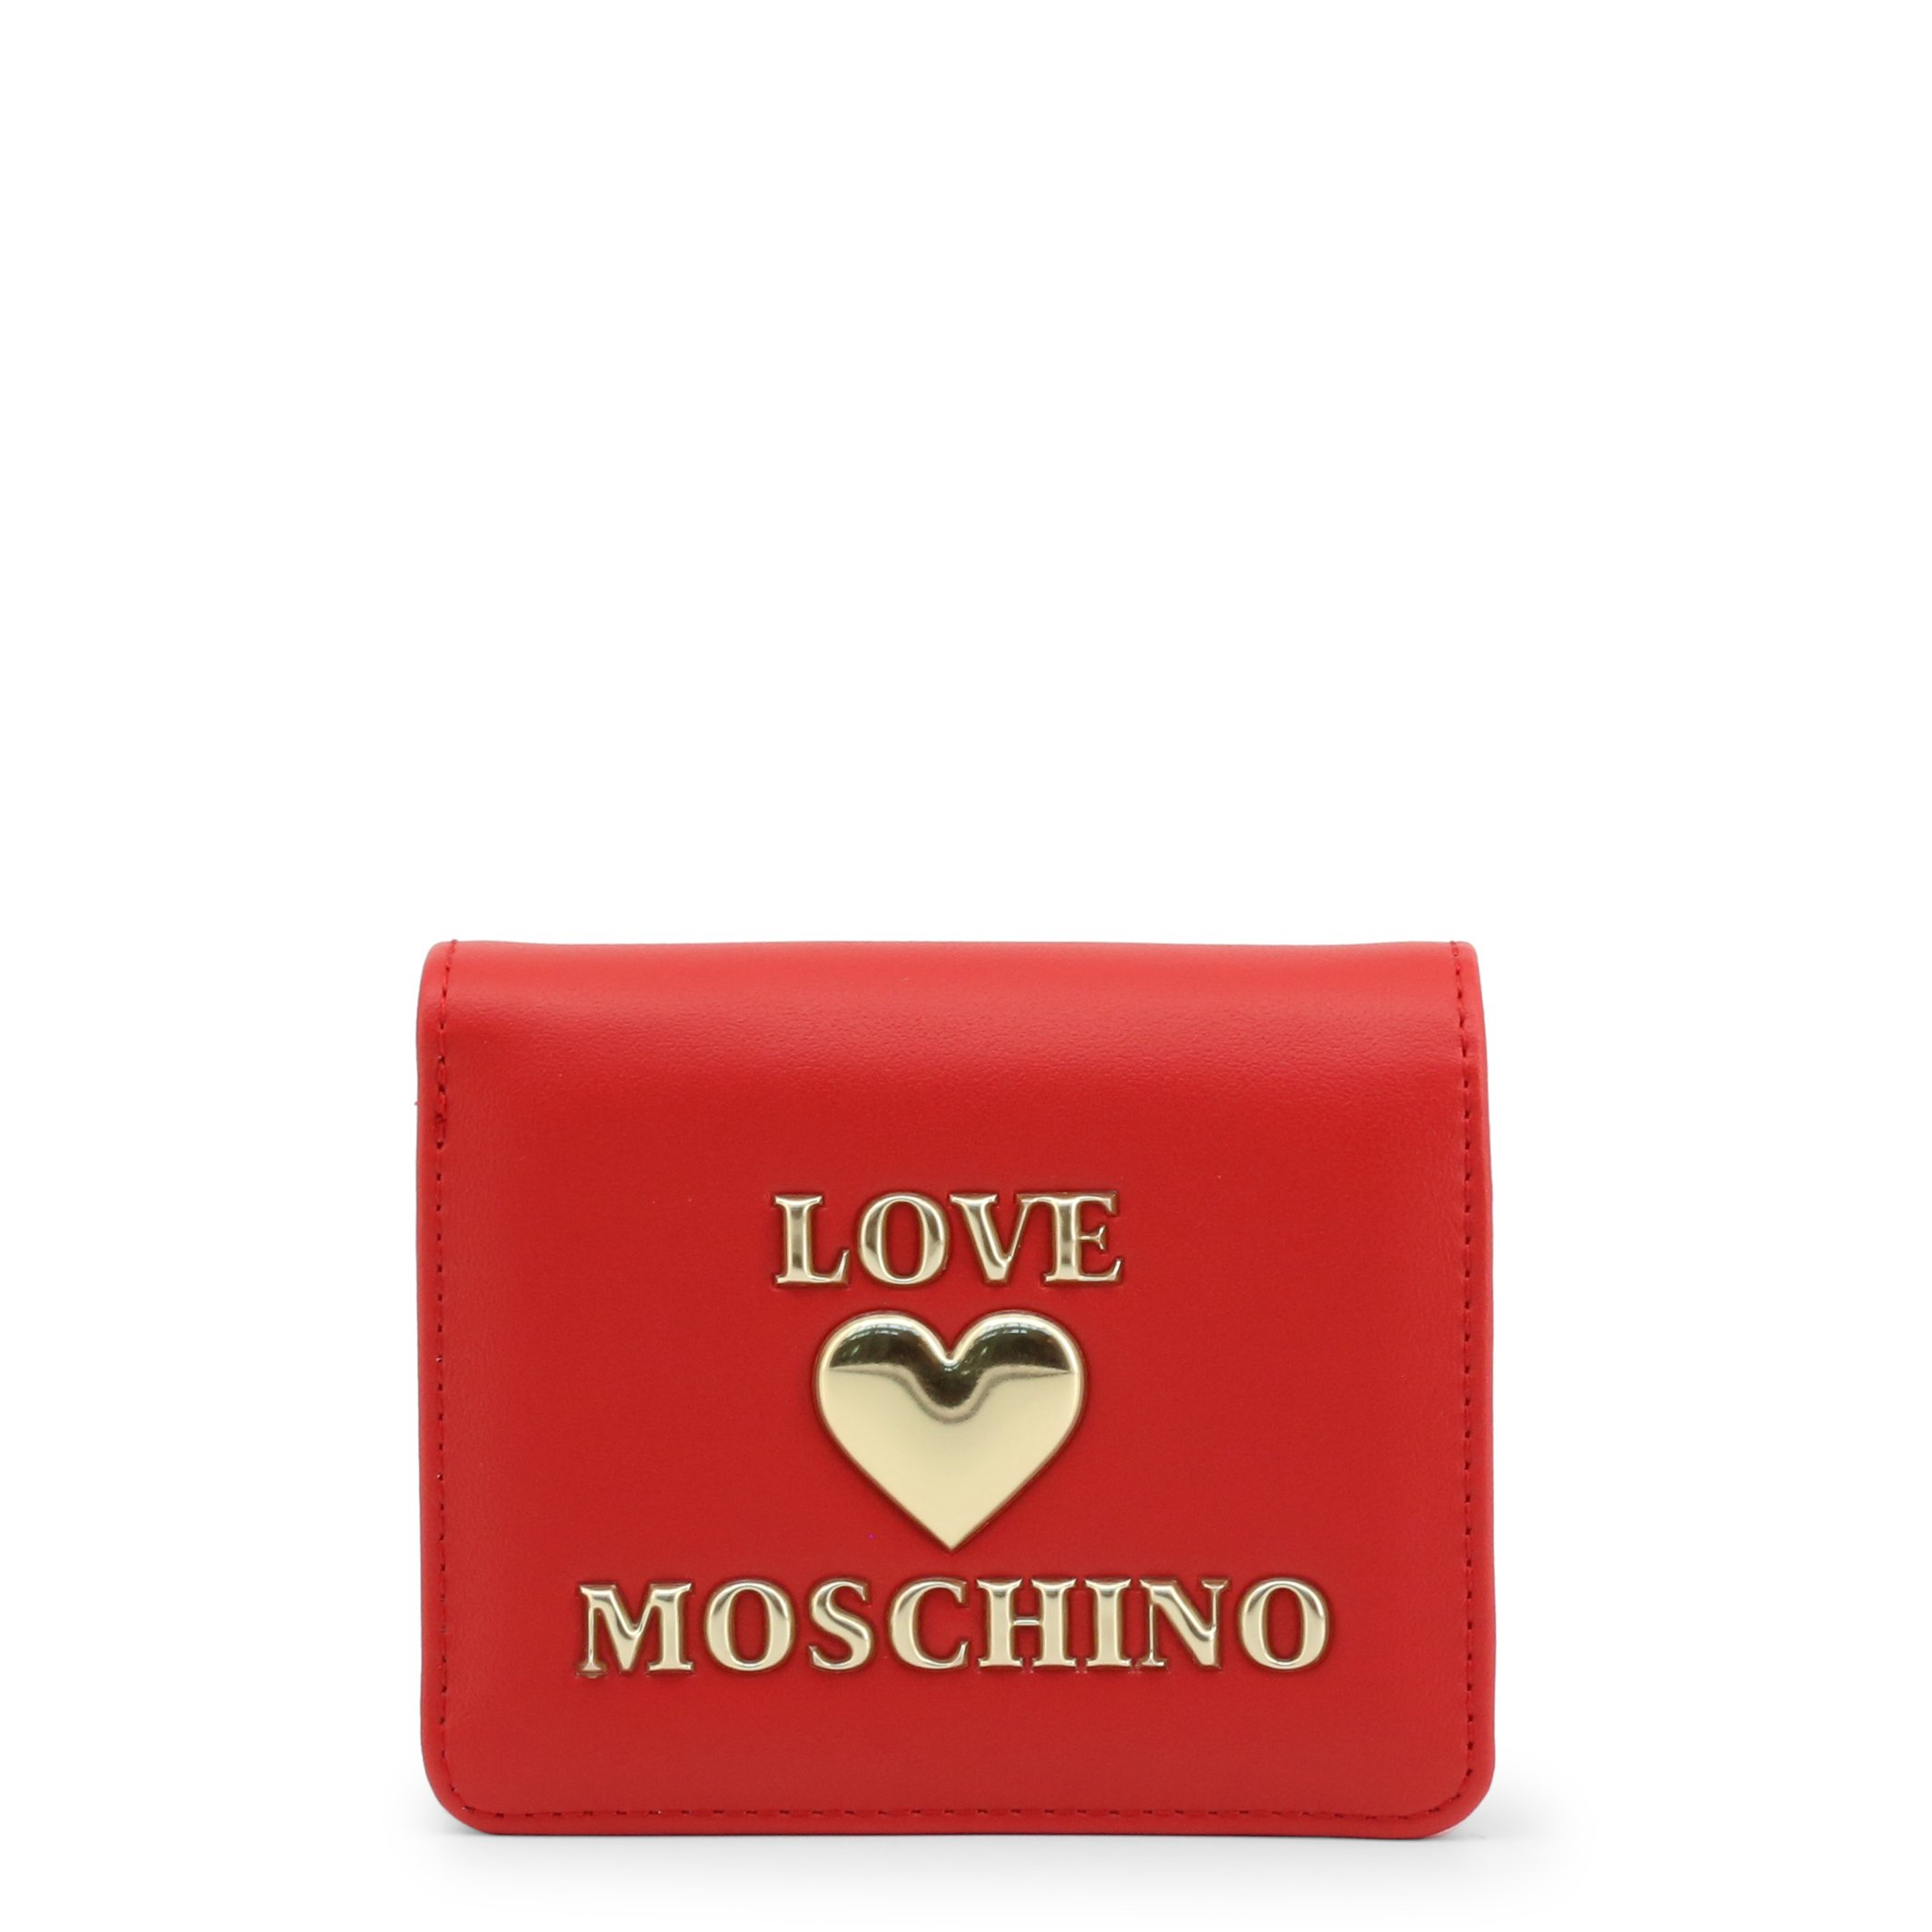 Love Moschino Women's Wallet Various Colours JC5625PP1CLF0 - red NOSIZE